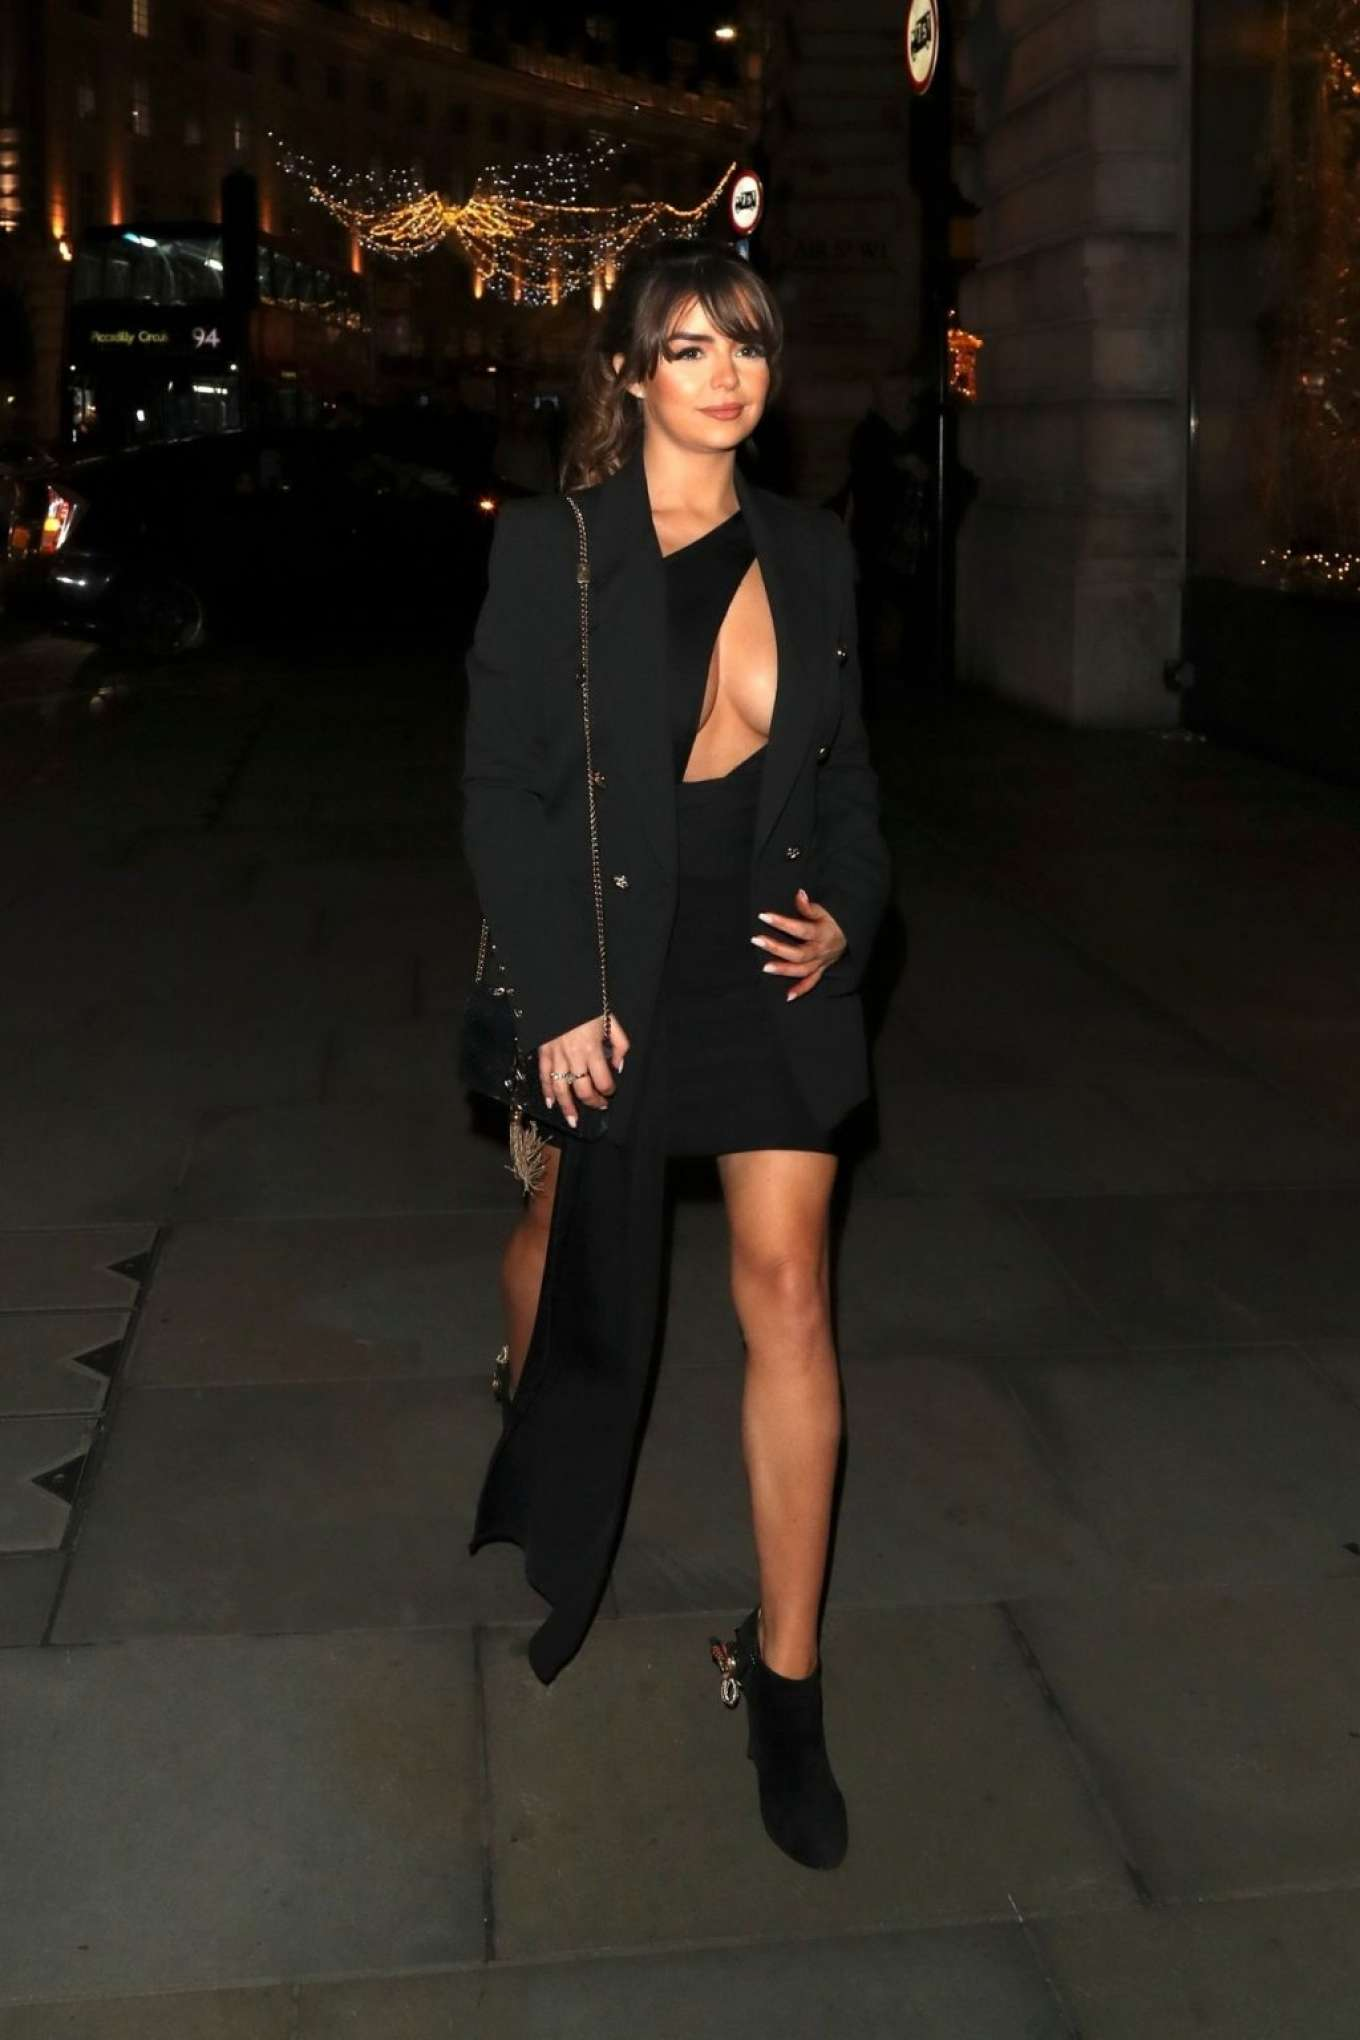 Demi Rose Mawby 2019 : Demi Rose Mawby was pictured while arriving at Cafe Royal in London-11